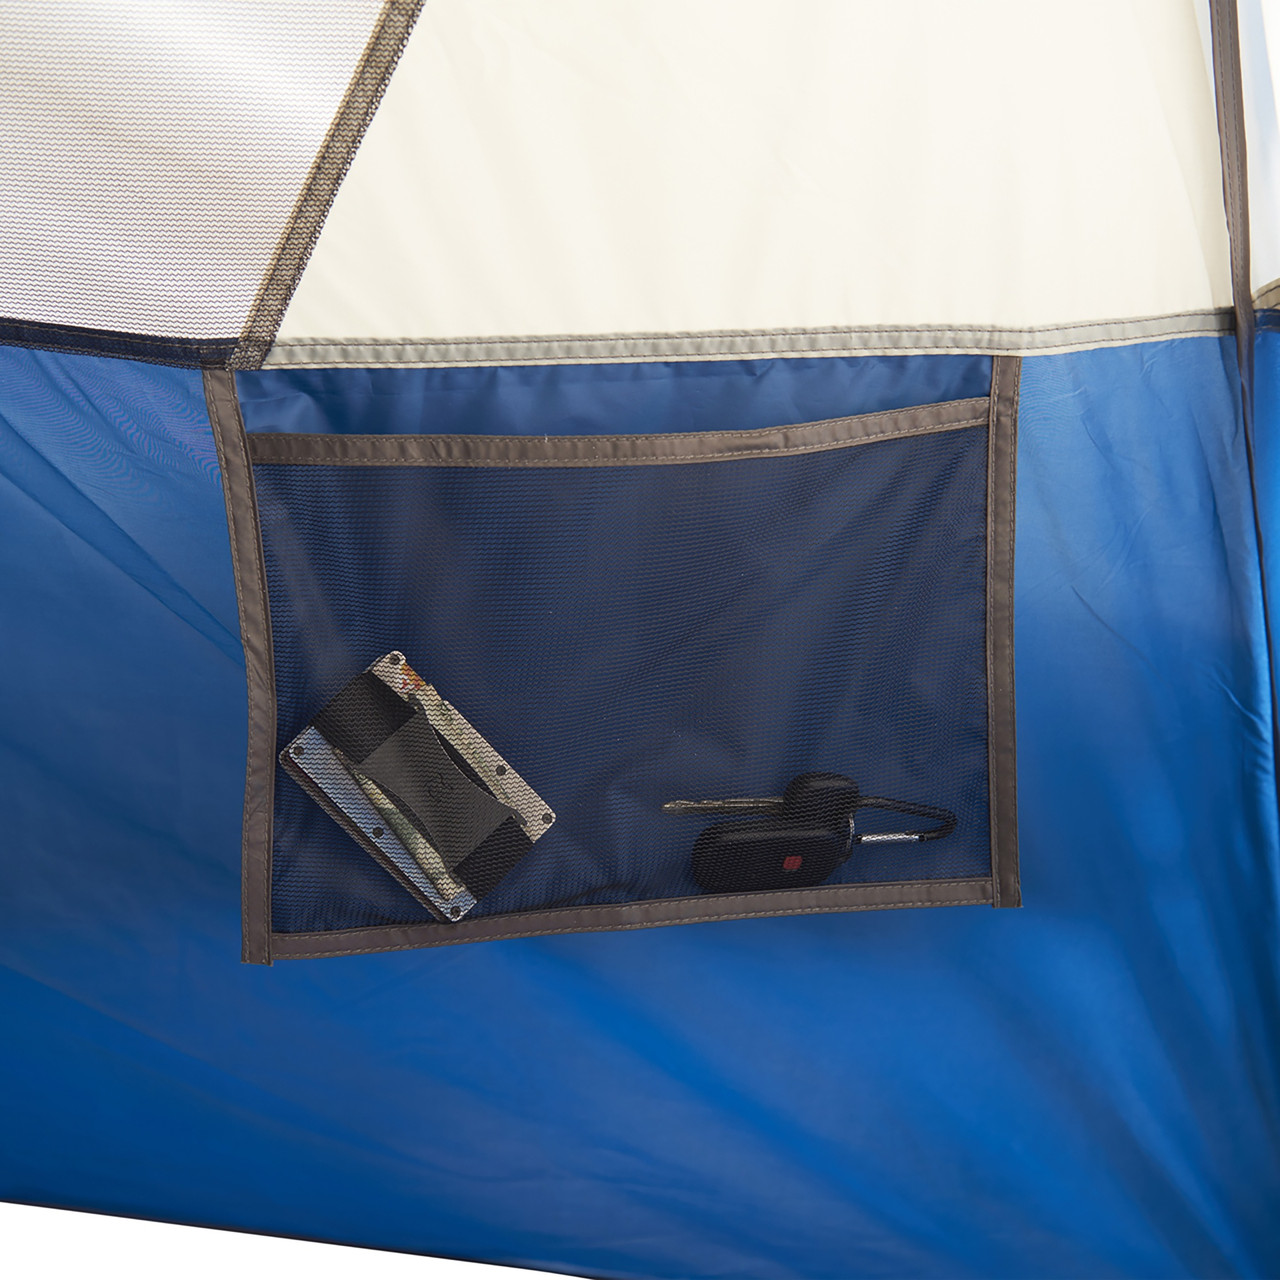 Interior close up of Wenzel Tamarack 6 Person Dome Tent, showing small hanging mesh pocket